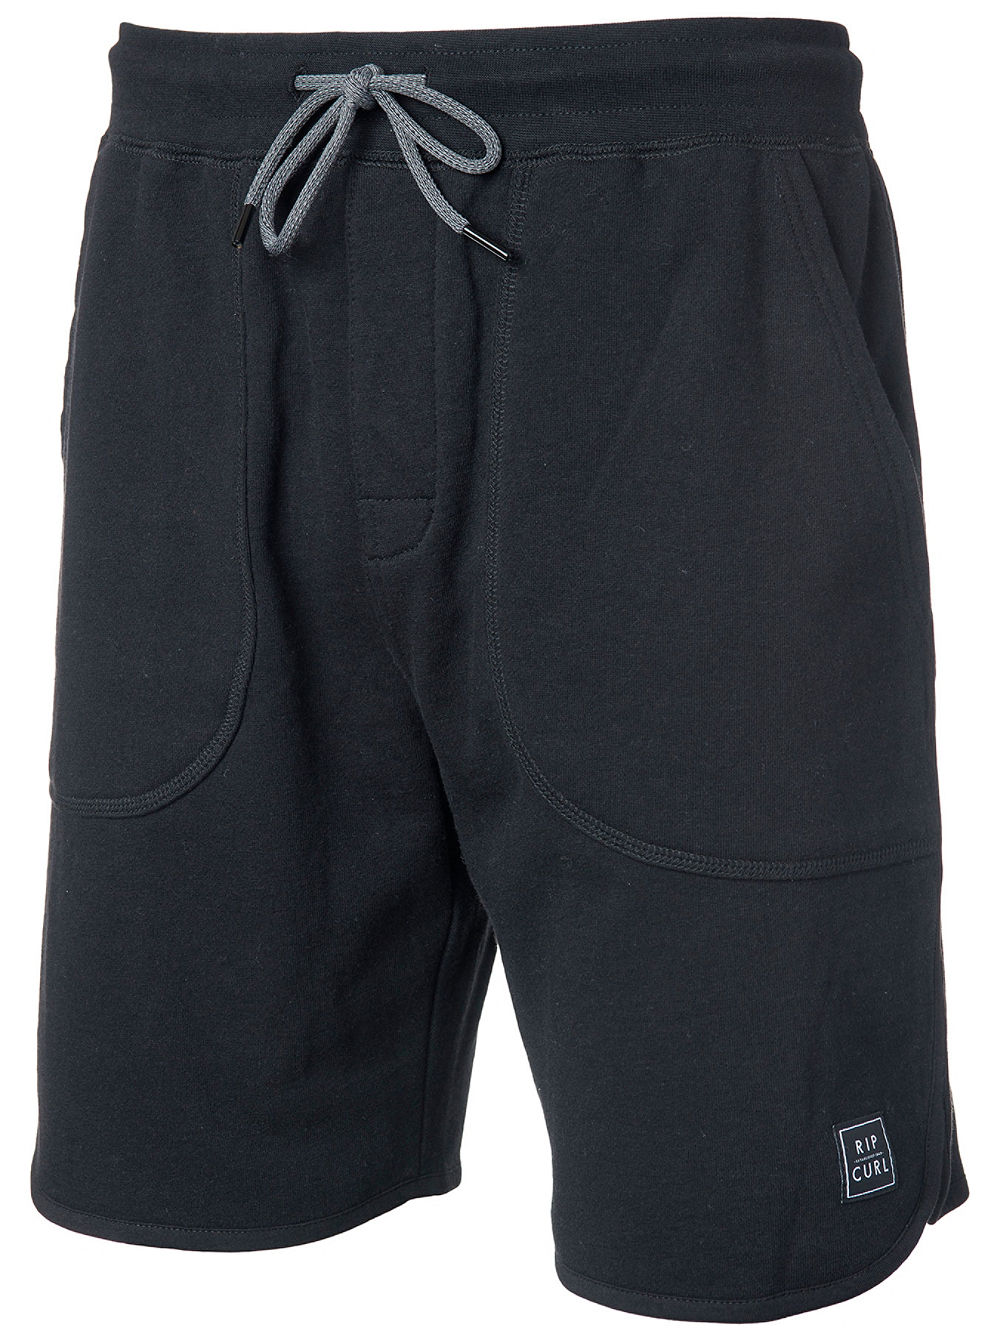 "Essential Surfers 19"" Shorts"